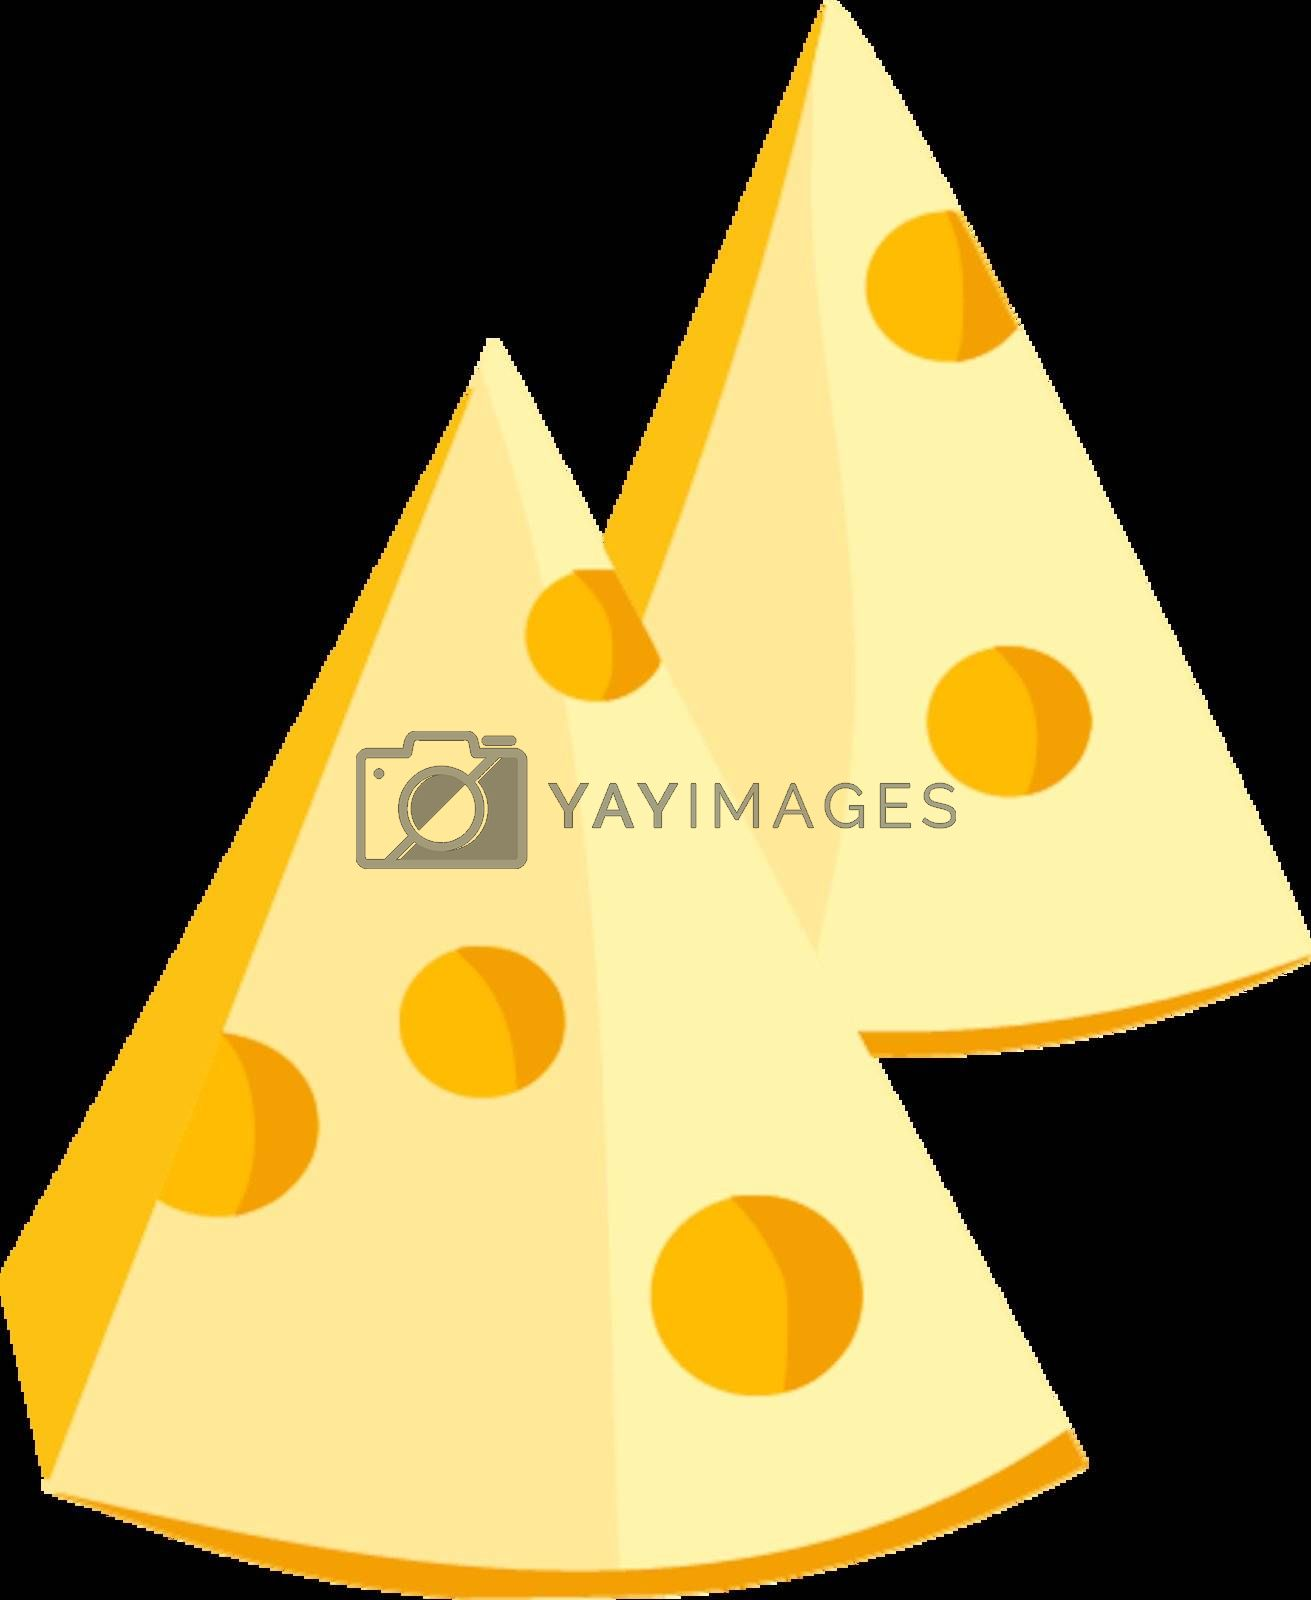 Royalty free image of Pieces of cheese by Perysty